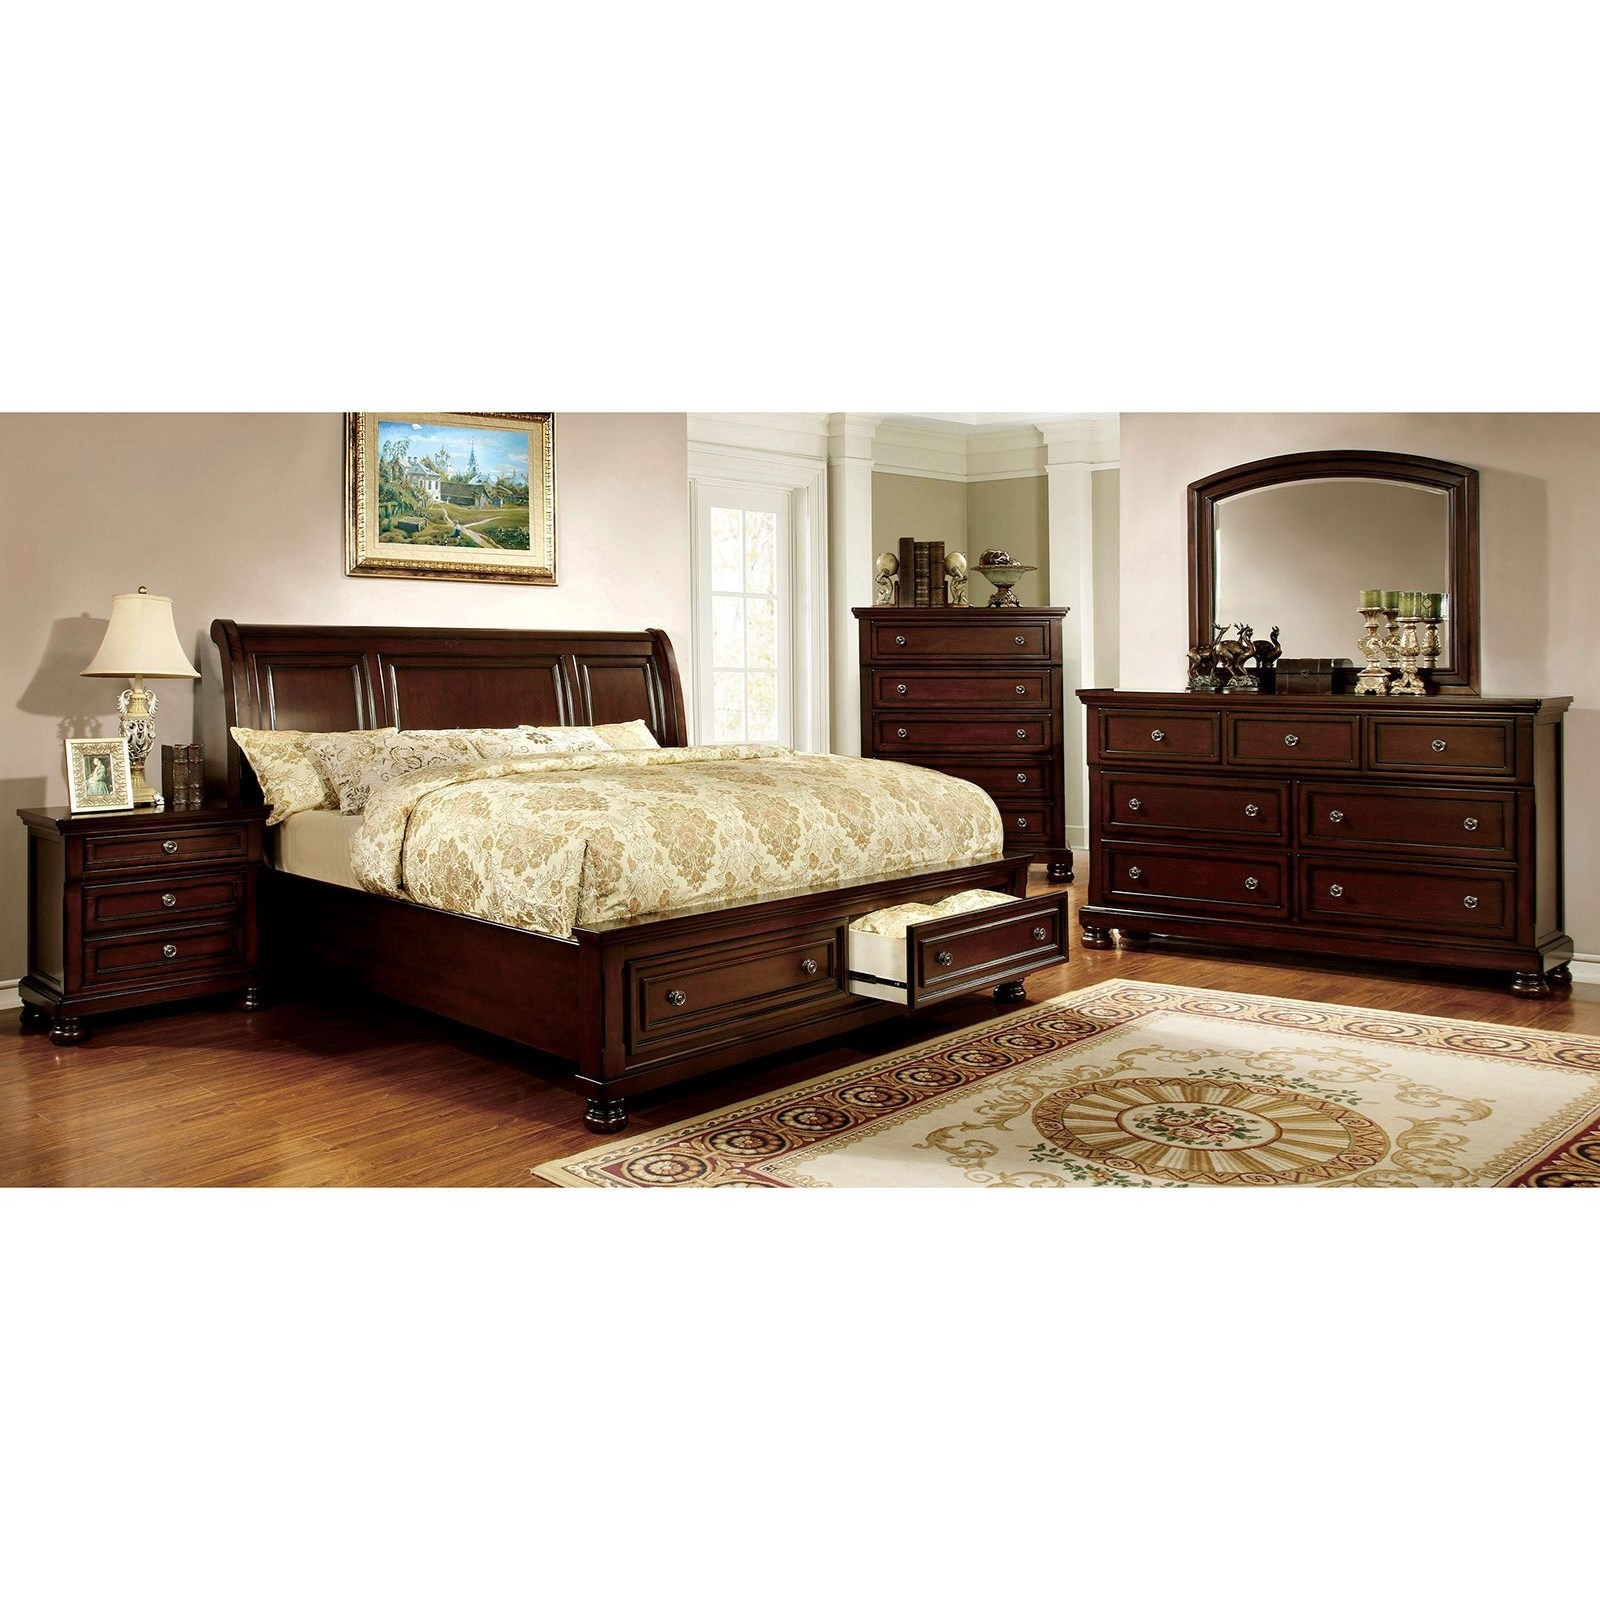 Northville Queen Bed and 1NS and Dresser and Mirror at Household Furniture